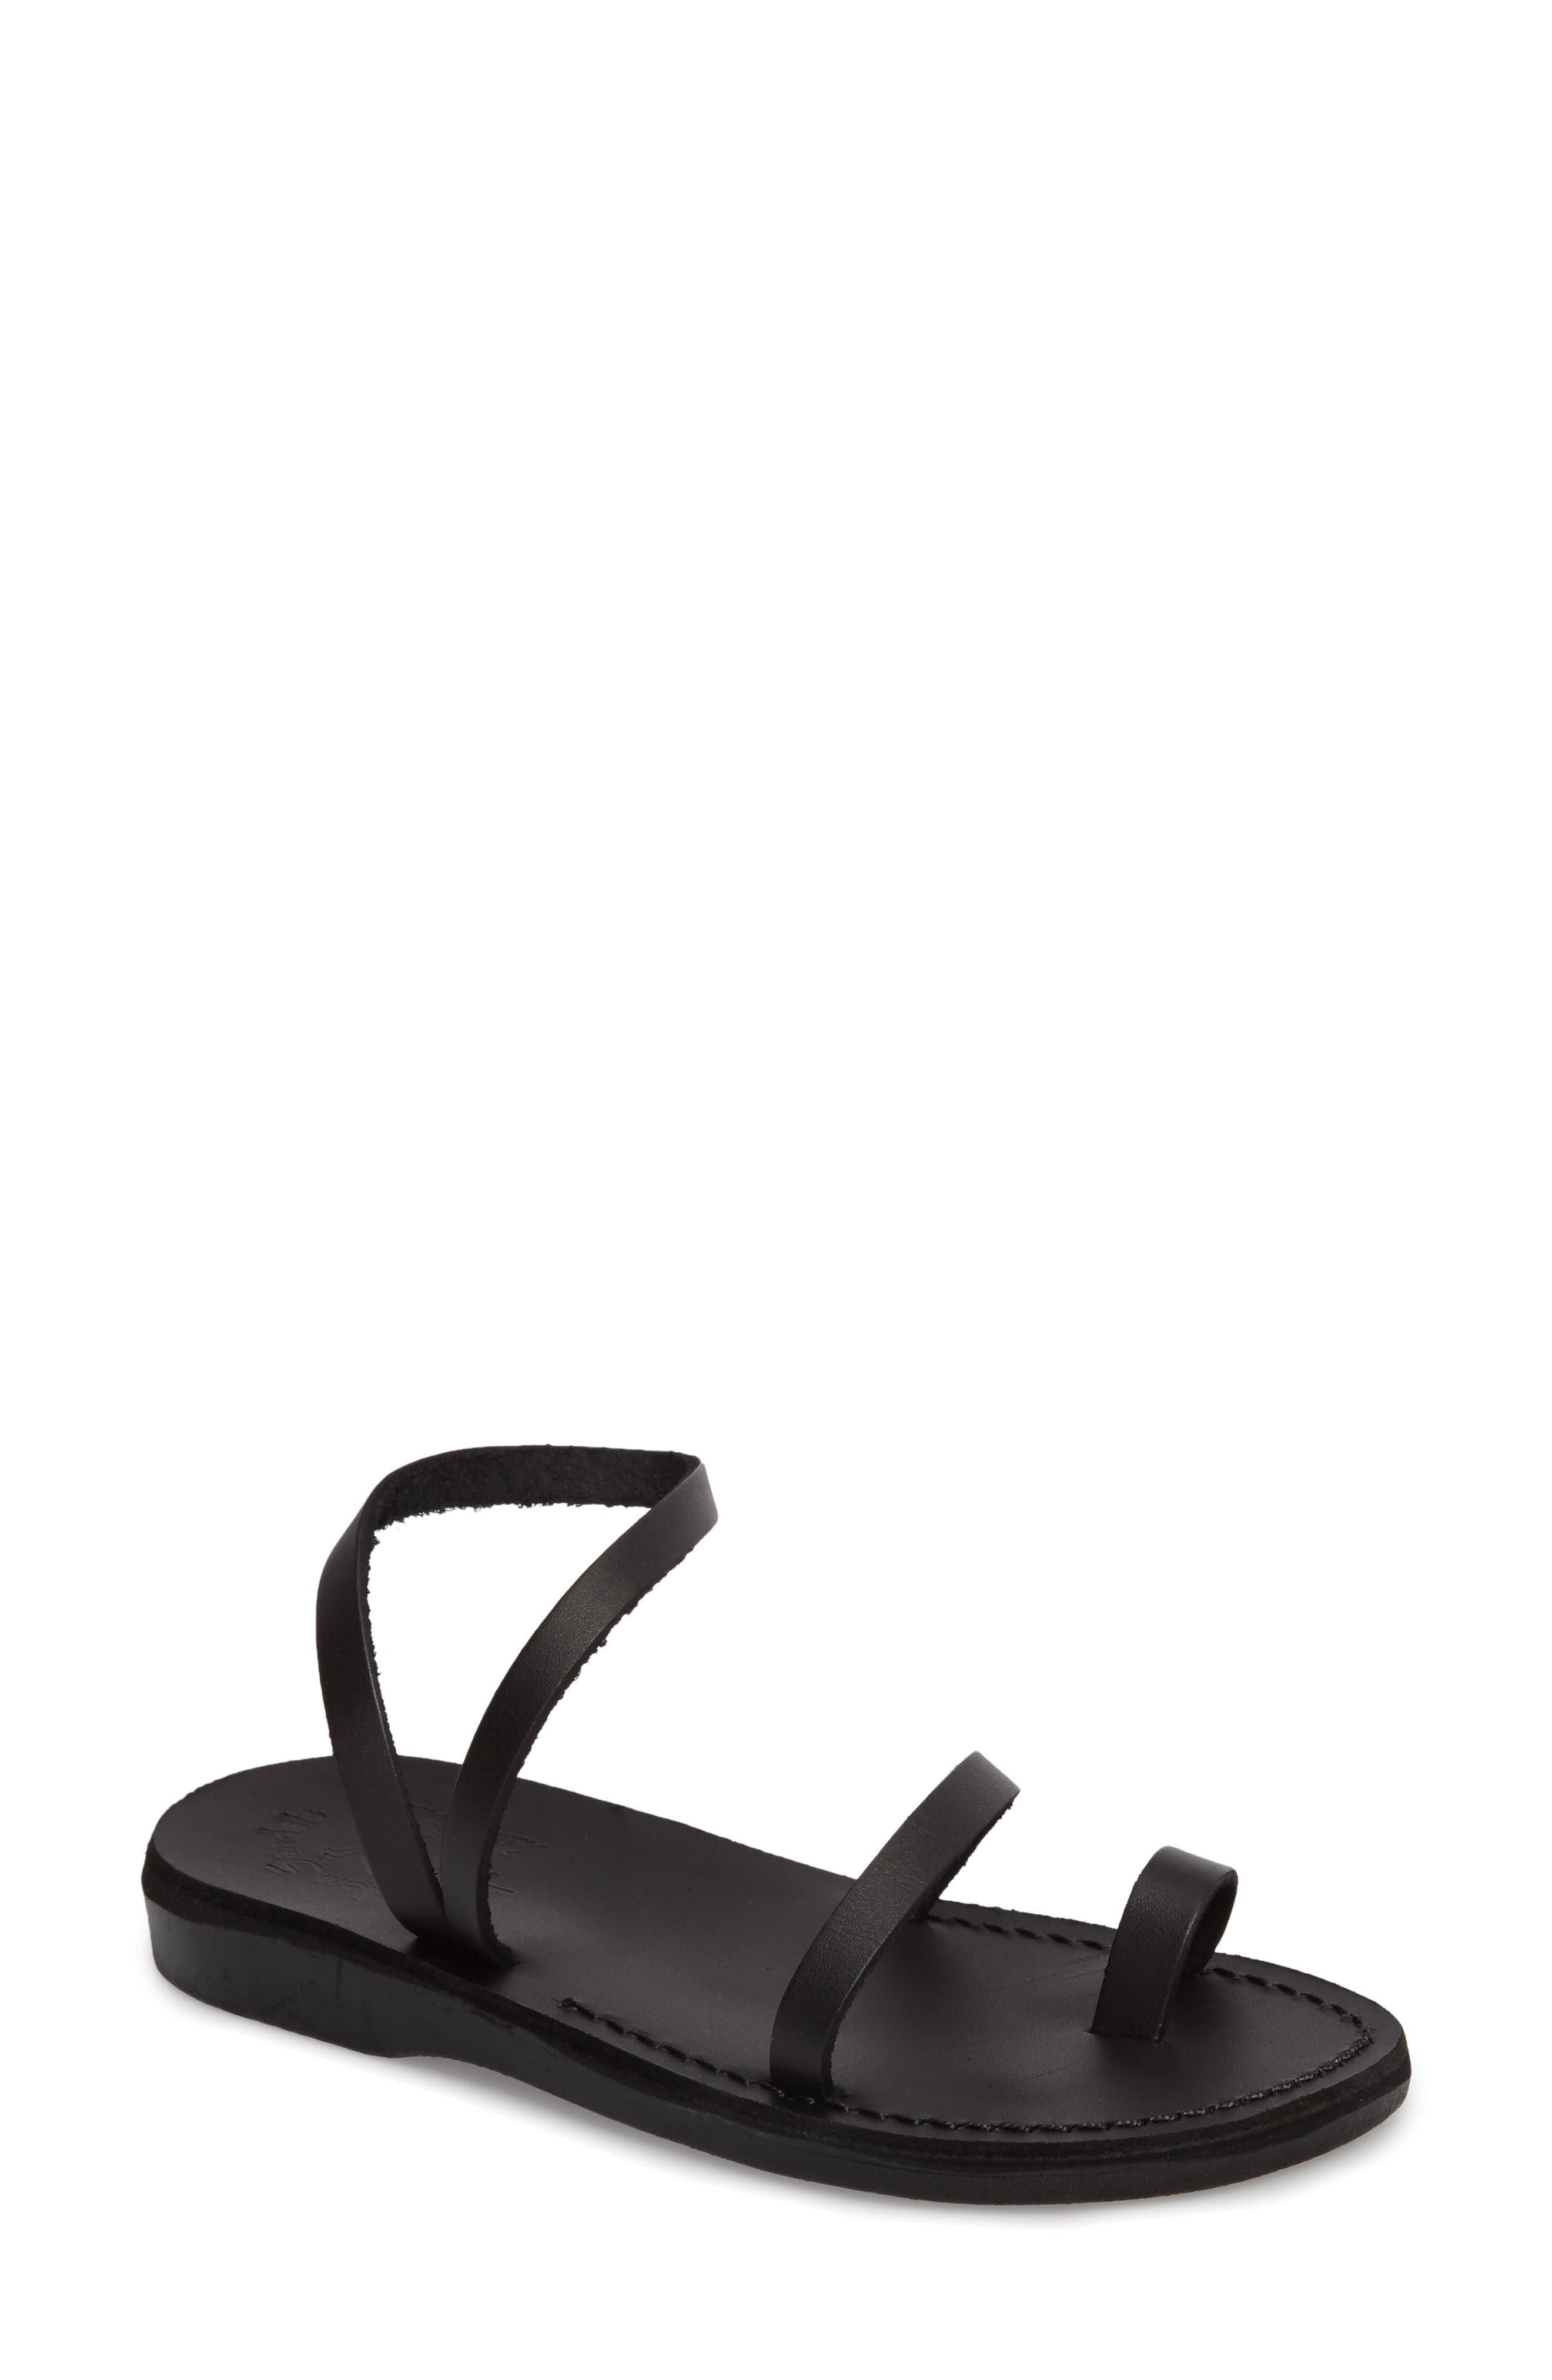 Ella Sandal,                         Main,                         color, BLACK LEATHER